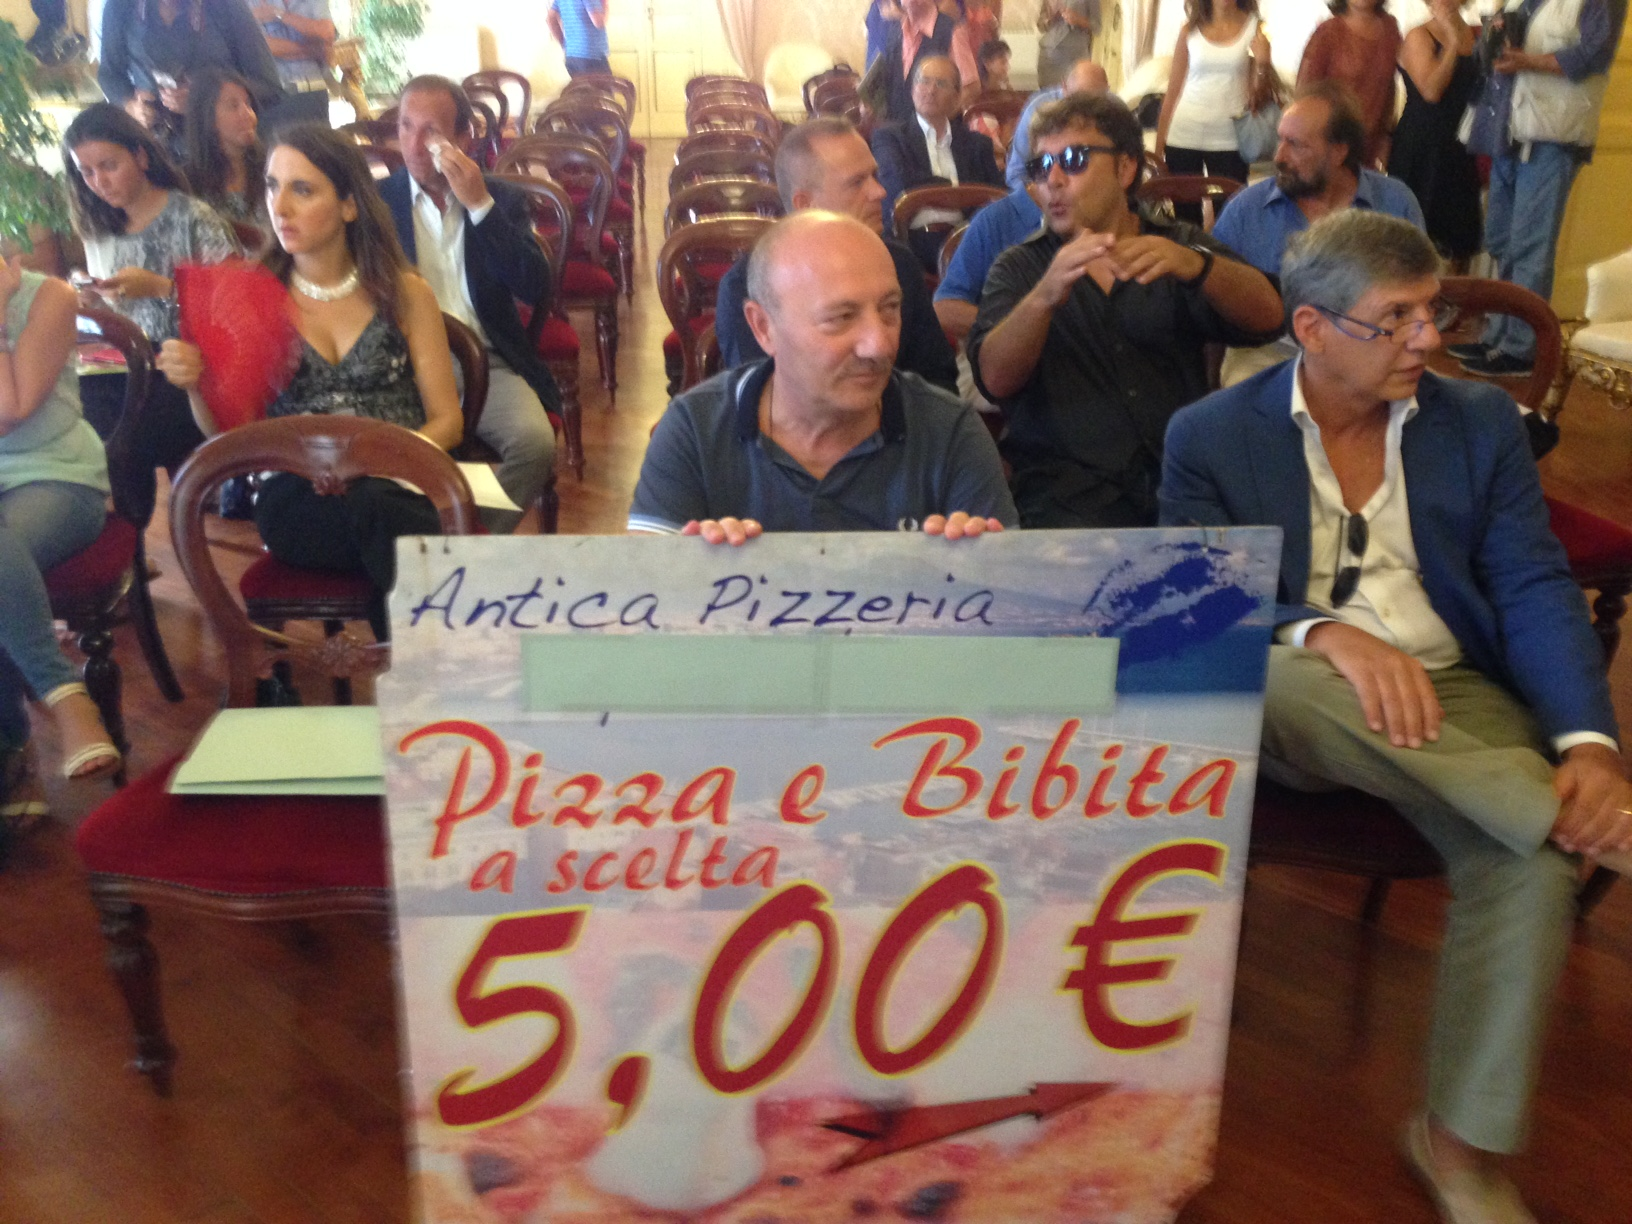 Napoli Pizza Village, contestata la conferenza stampa